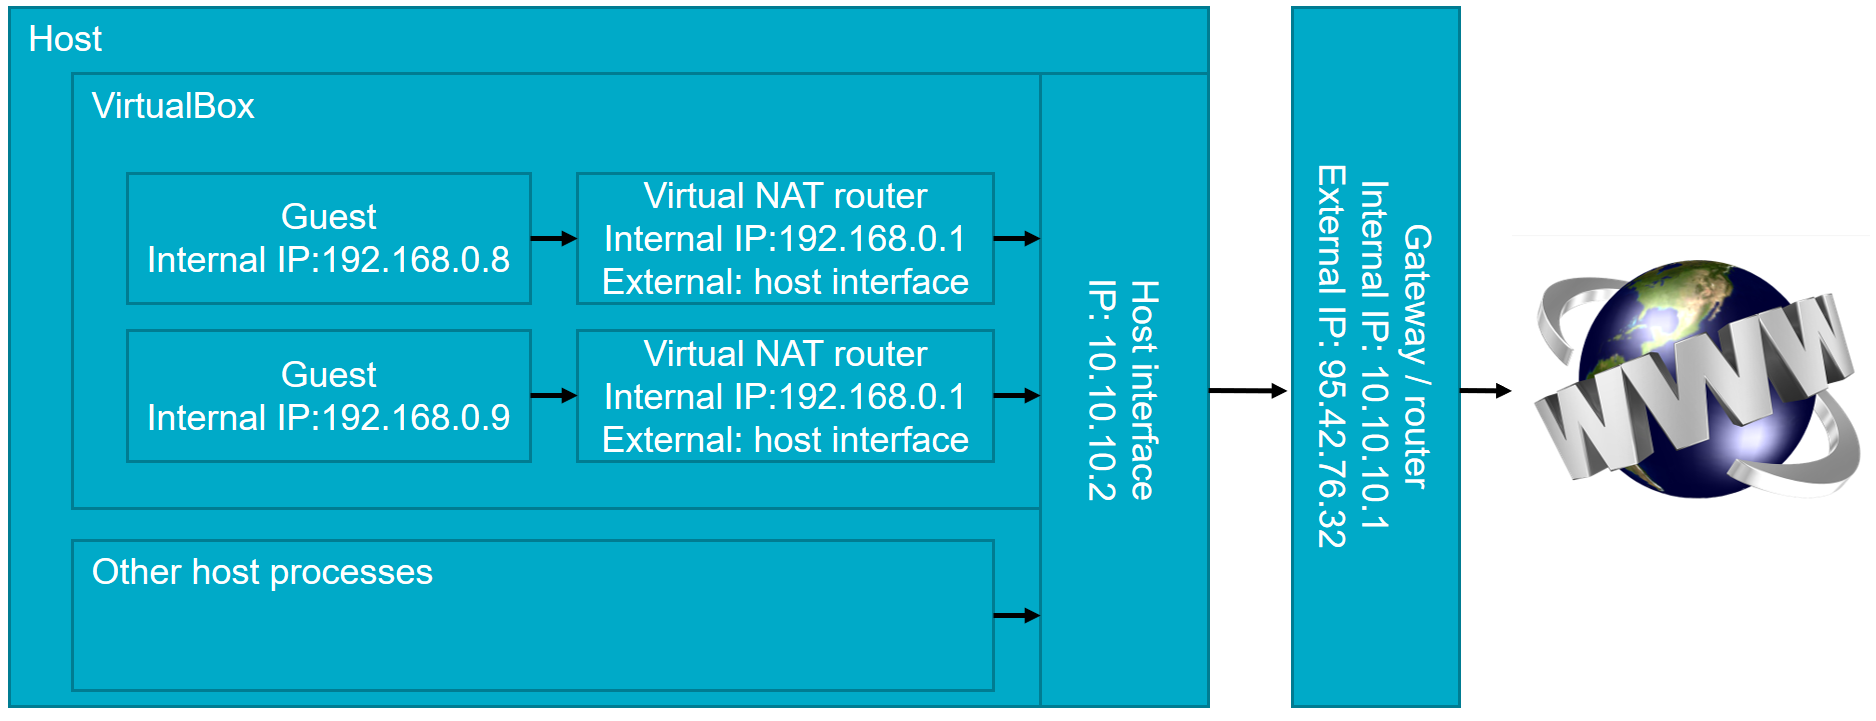 VirtualBox networking explained - AMIS Oracle and Java Blog